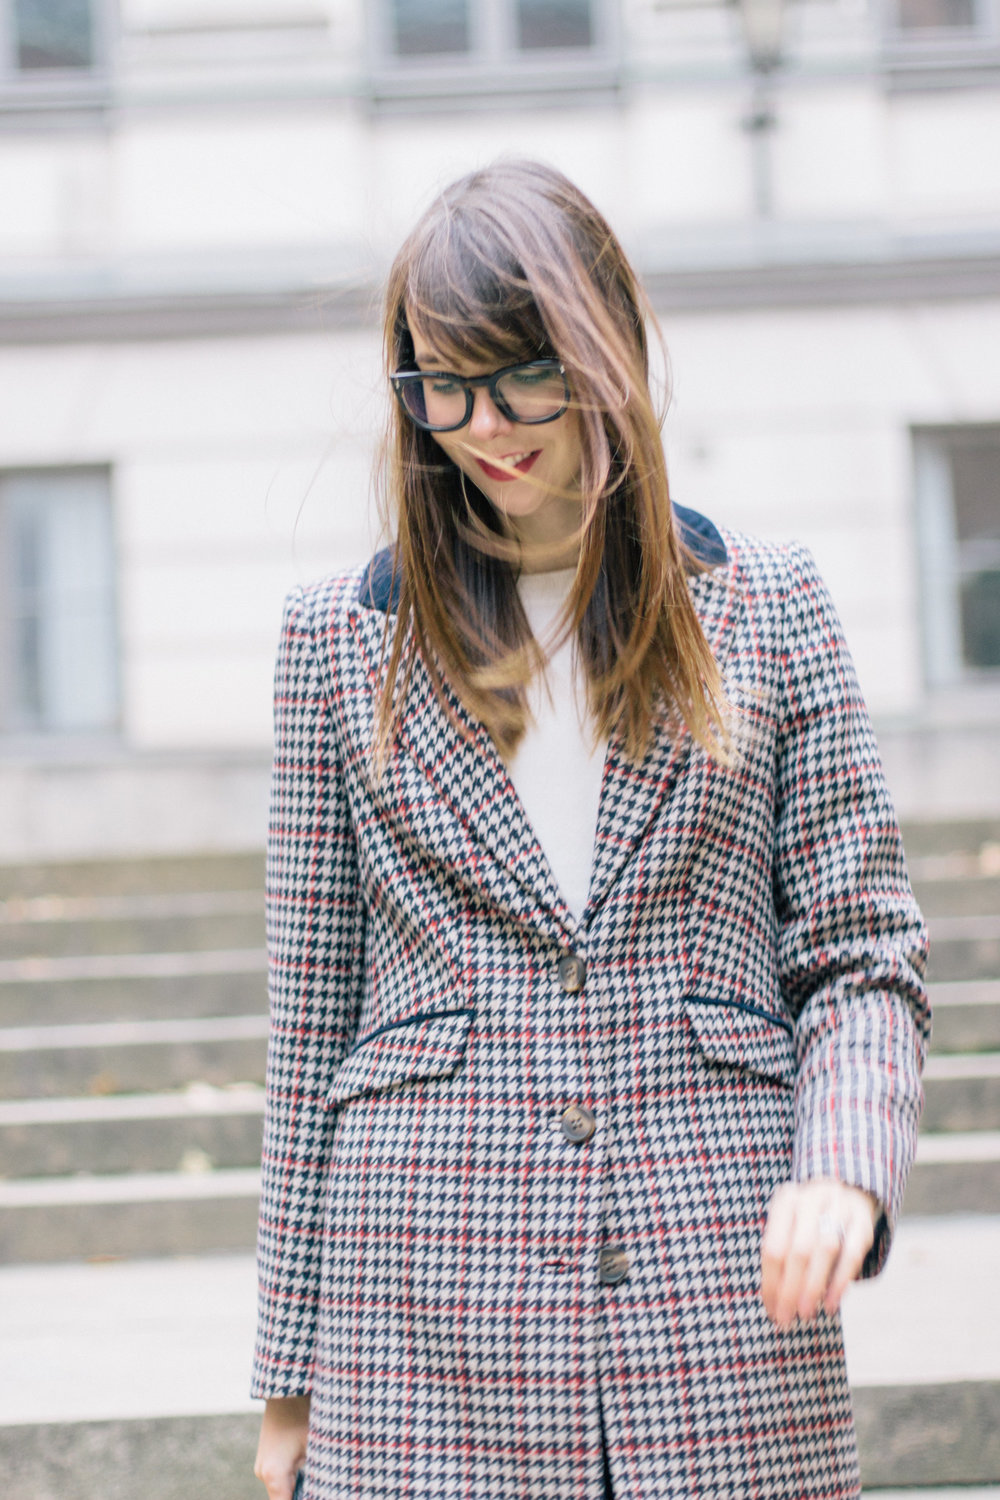 Look 2: SMart City Dressing -